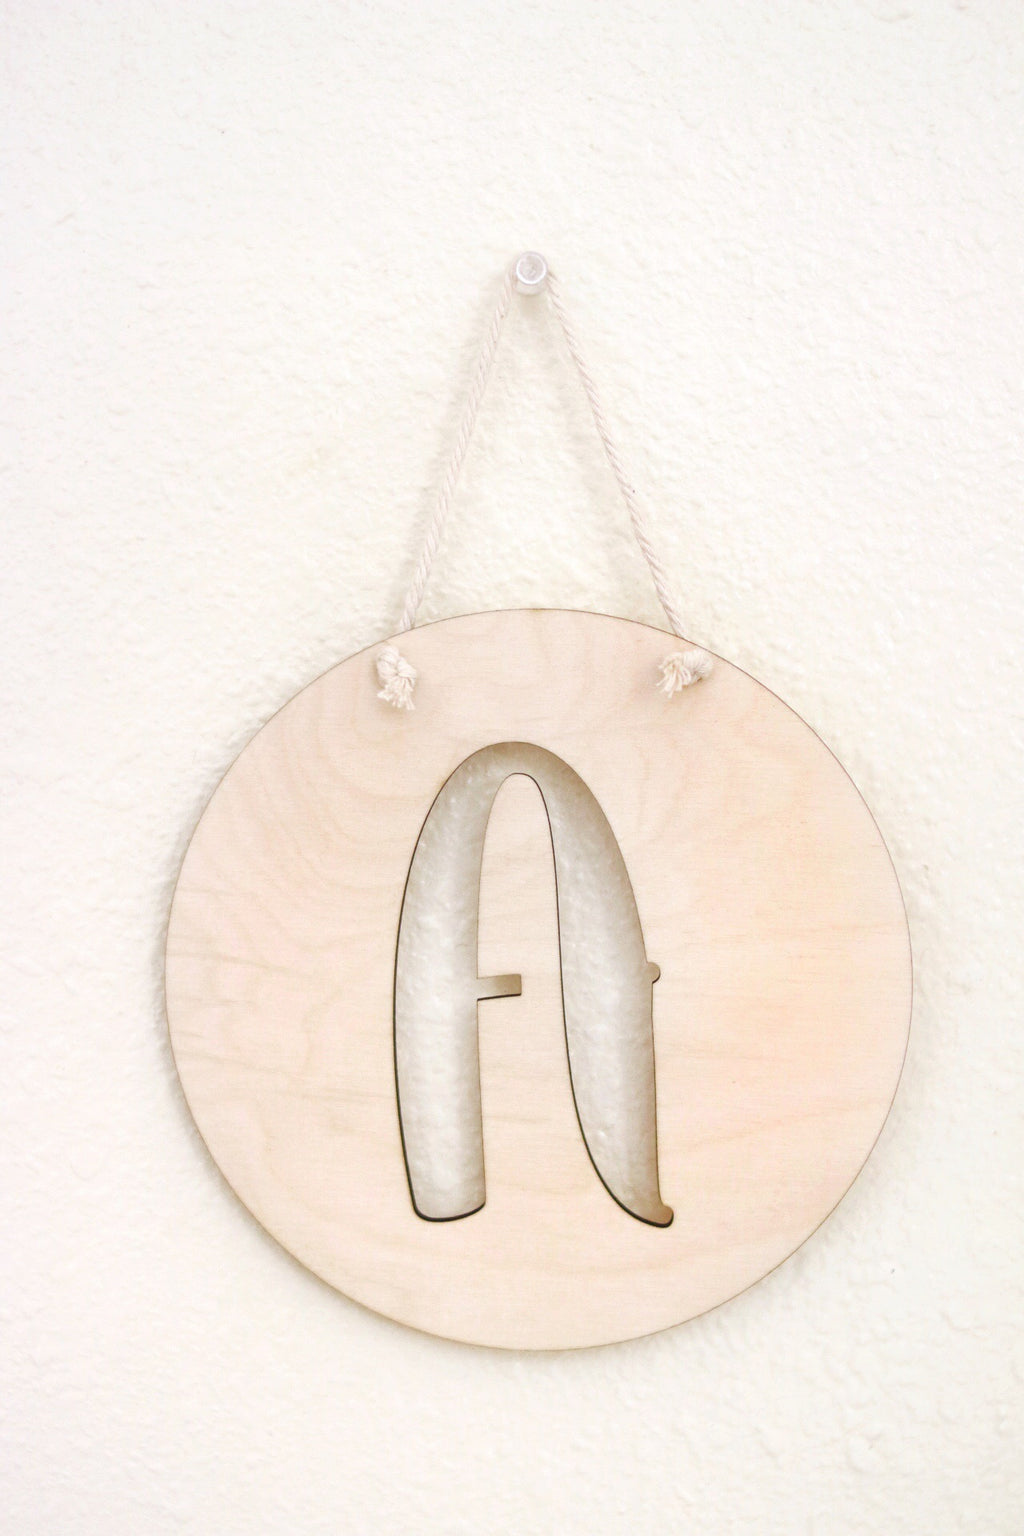 Hanging Wooden Letter Plaque | Customizable